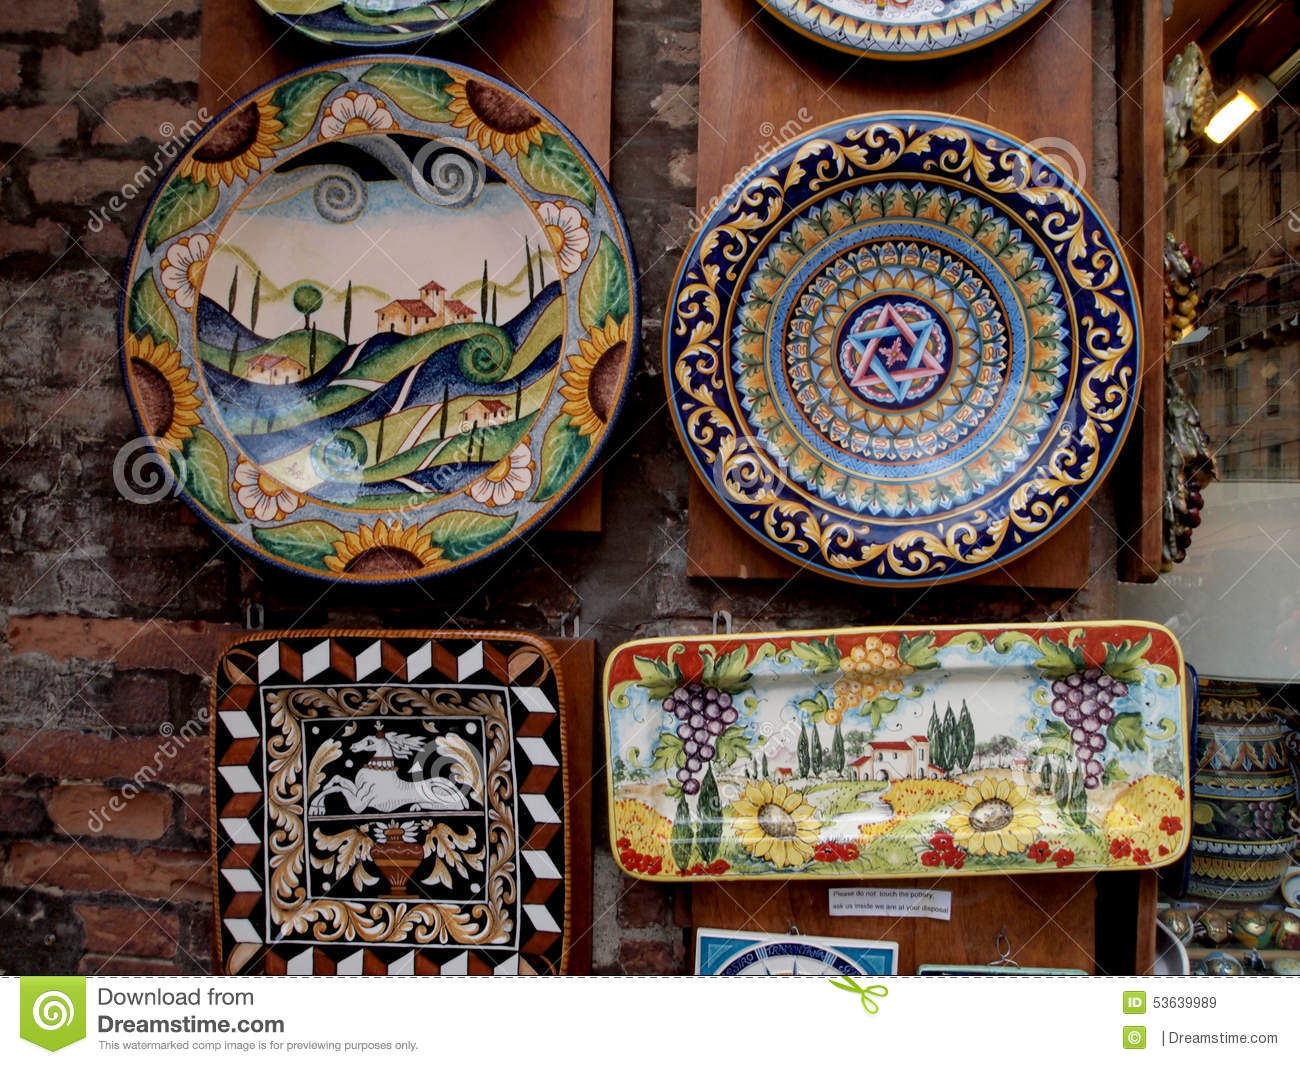 Decorative Wall Plates For Hanging: Wall Decorative Plates Hanging & How To Beautify Your